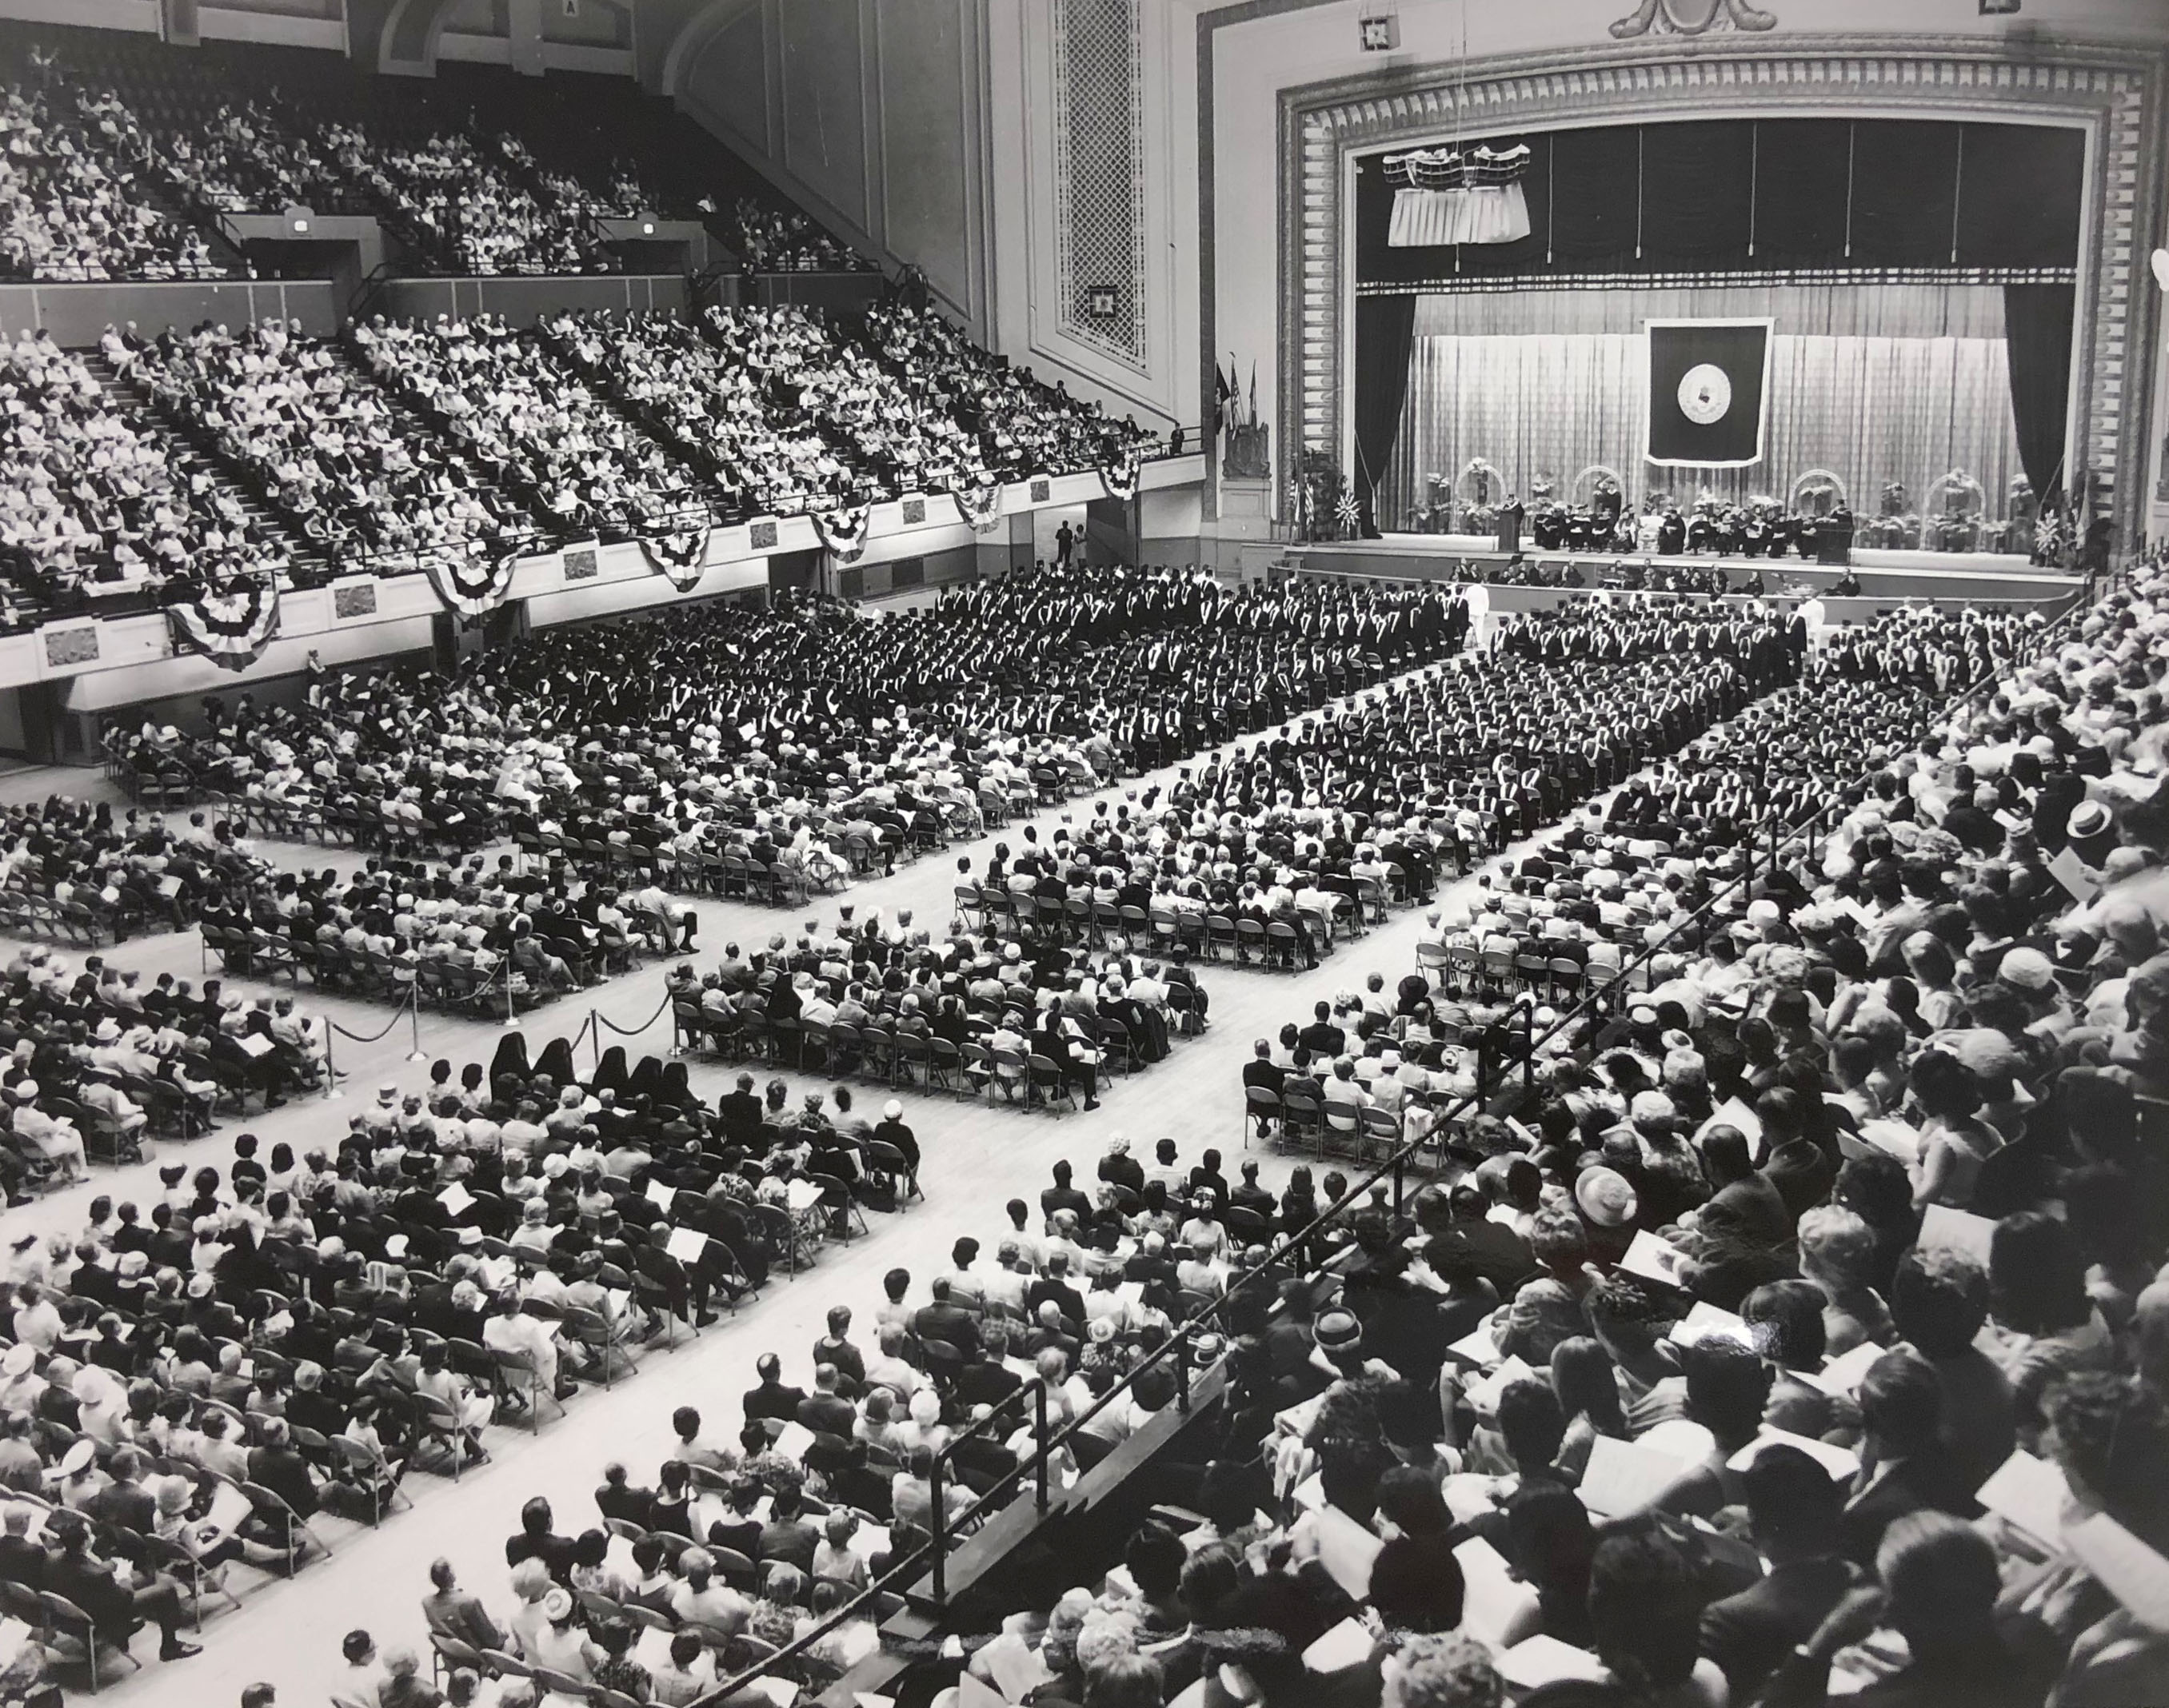 Commencement, 1969 (VUA 35/22/8 Villanova Photograph Collection)